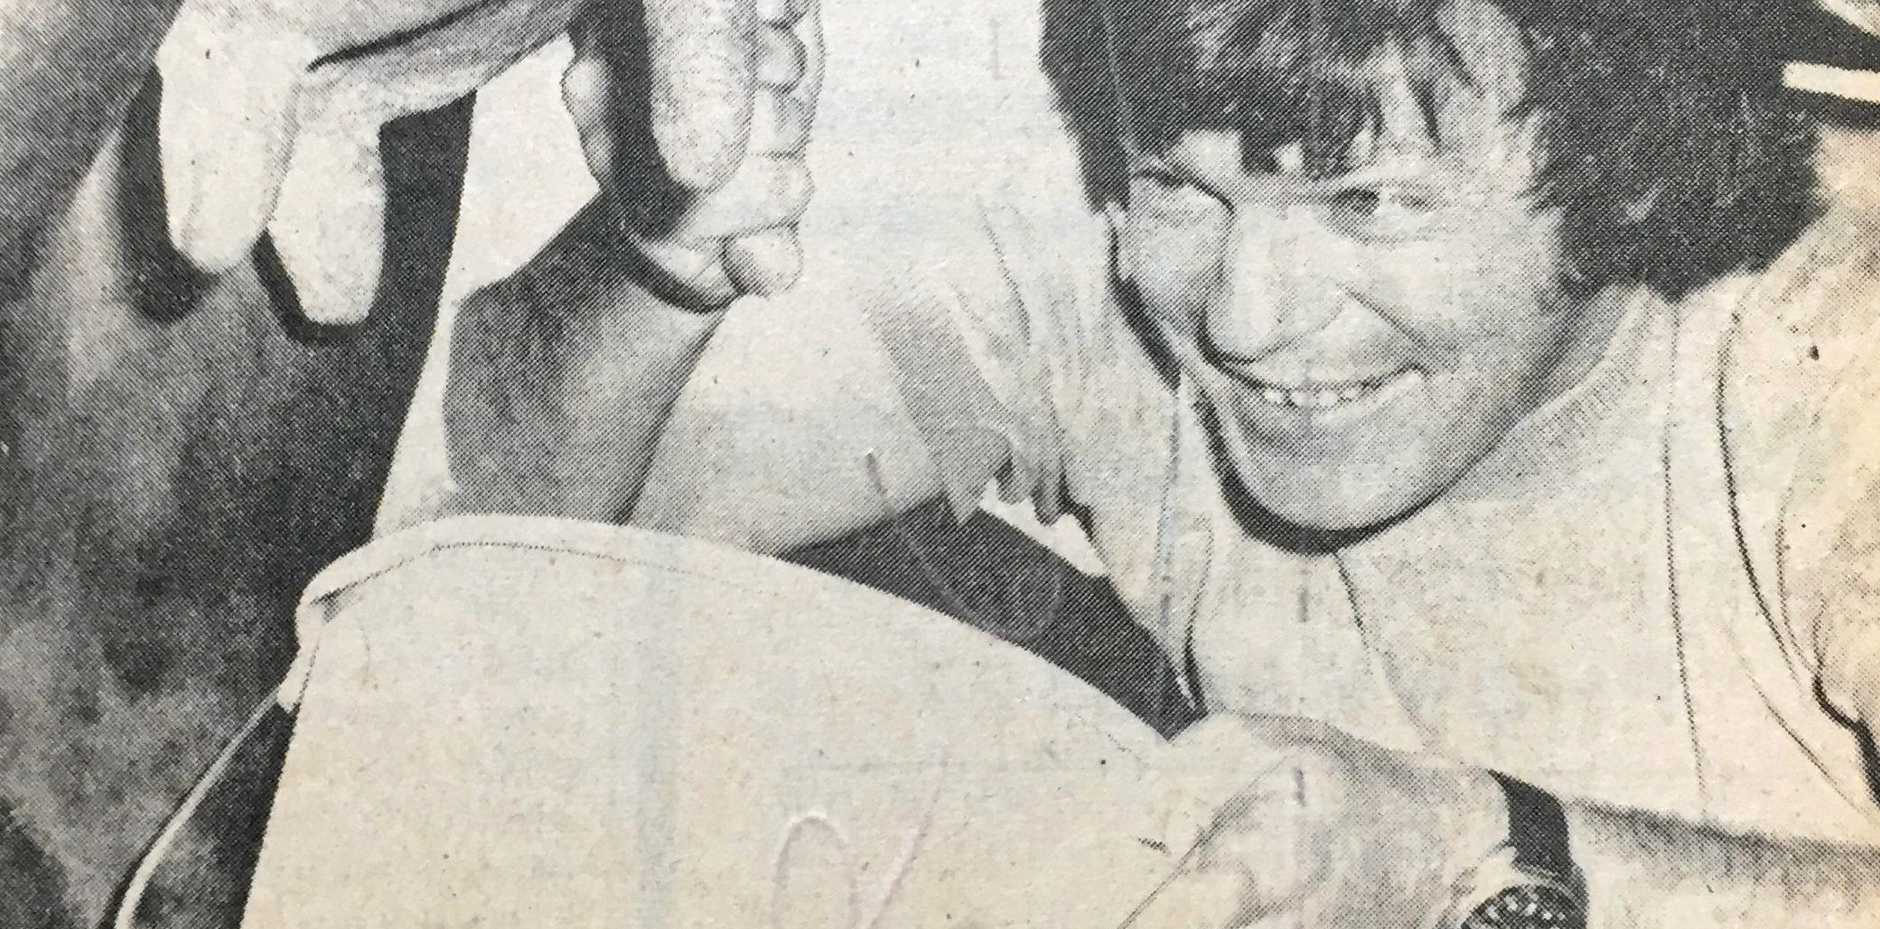 NORTH COAST NATIONAL 1972: Ross McLeod competes in the Radio 2LM milking competition.